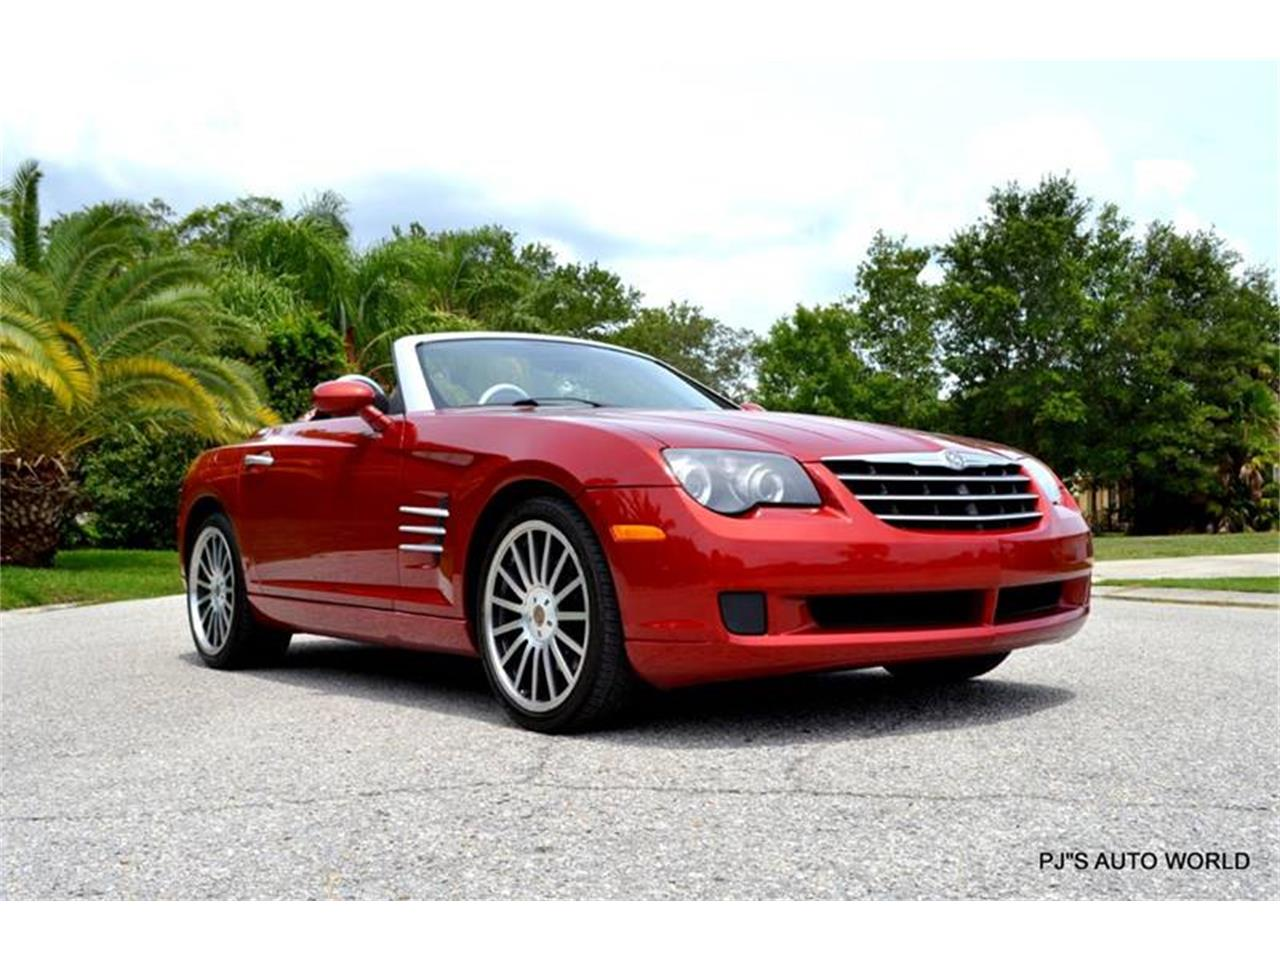 Large Picture of '05 Chrysler Crossfire located in Clearwater Florida - $10,900.00 - L7XM